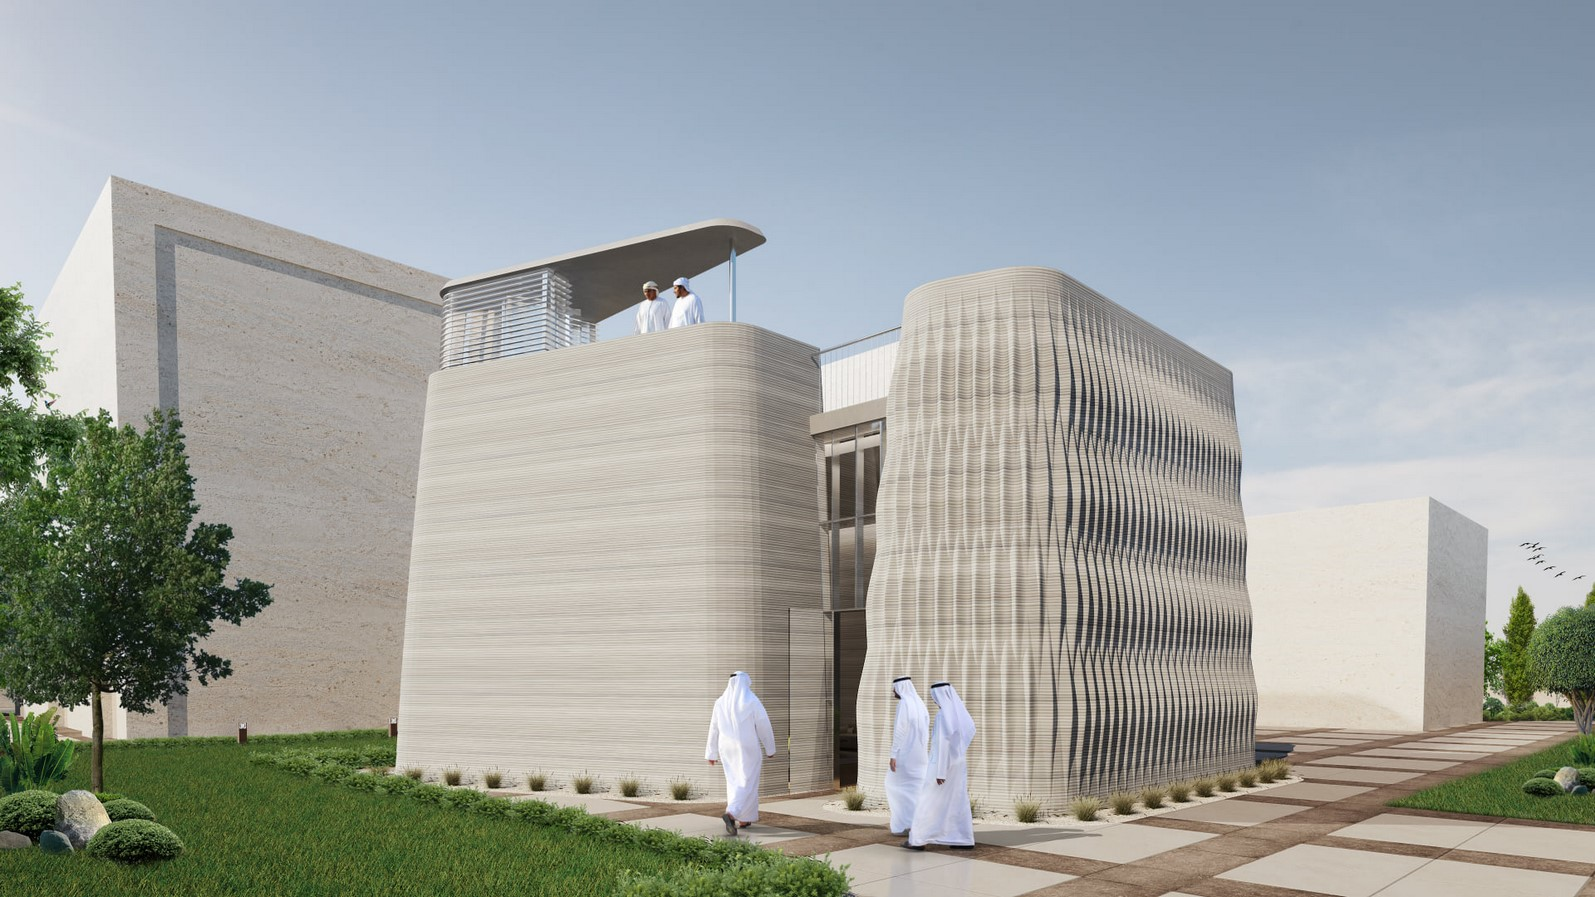 Modular 3D-Printed Majlis House With Smooth Concrete Walls In Abu Dhabi designed by MEAN* - Sheet8